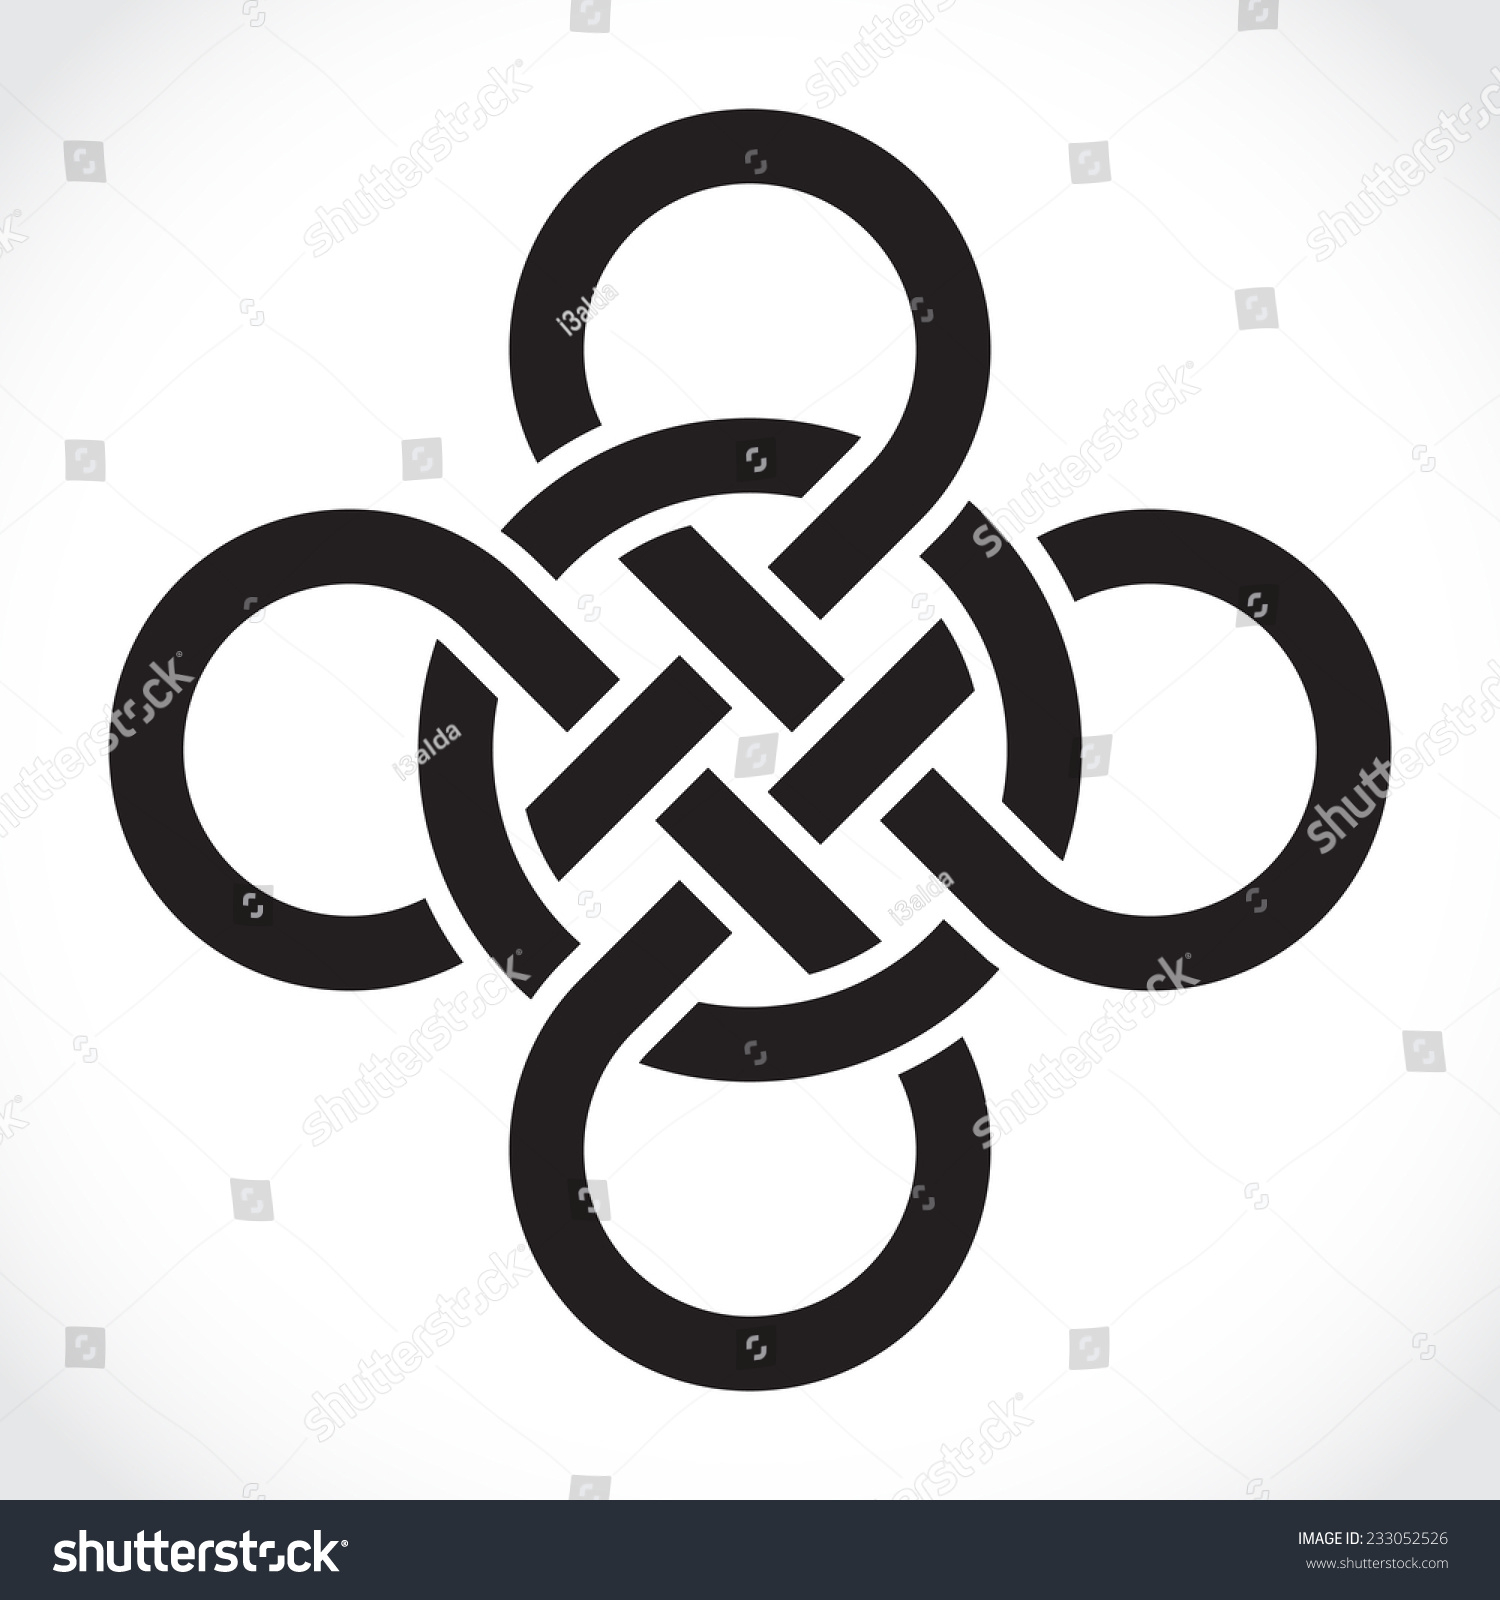 Celtic Symbol Illustration Stock Vector Royalty Free 233052526